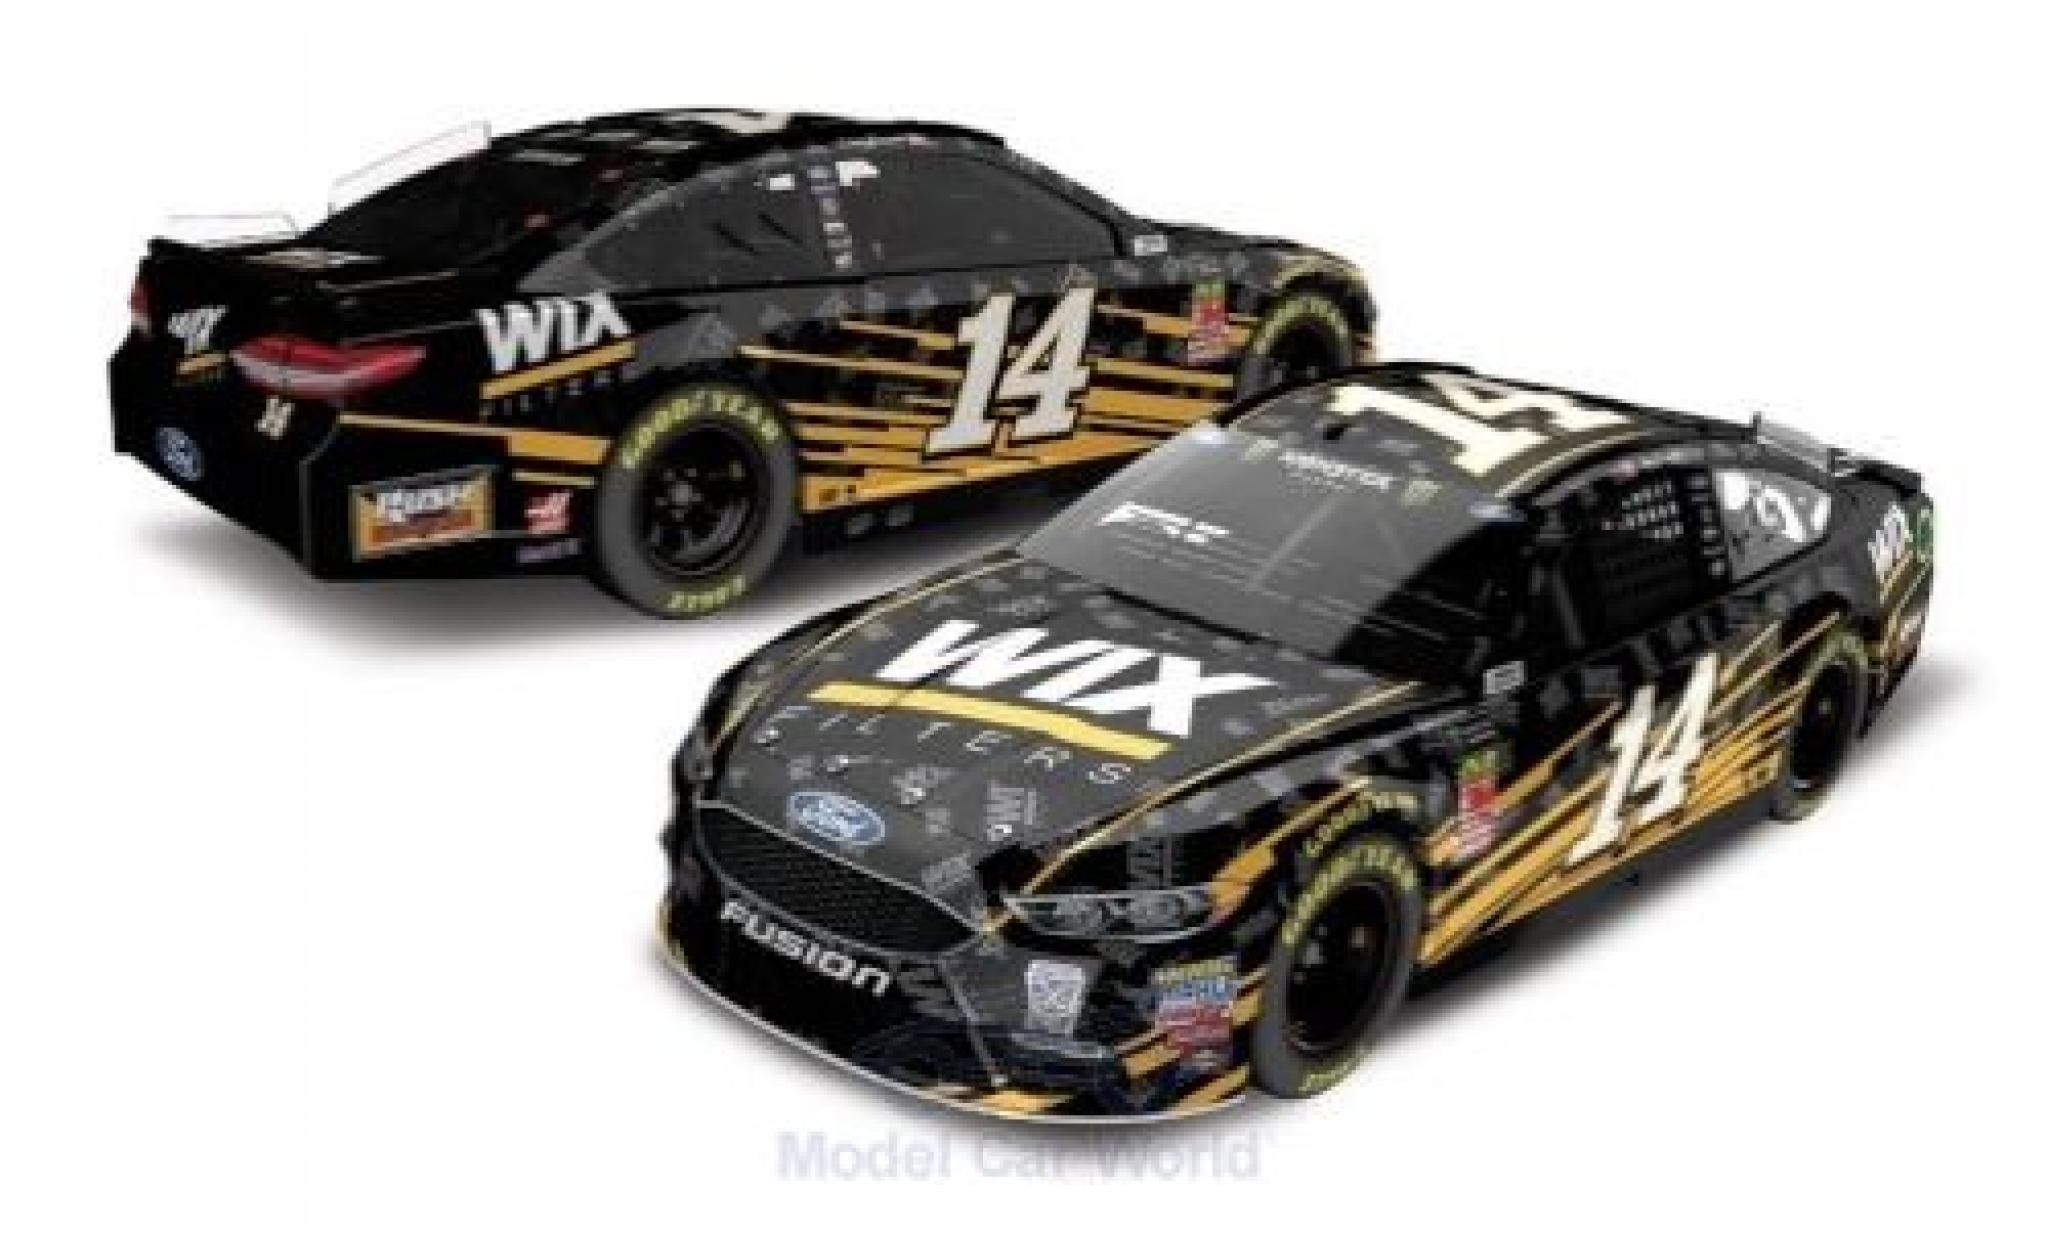 Ford Fusion 1/64 Lionel Racing No.14 Stewart-Haas Racing Wix Filters Nascar 2018 C.Bowyer